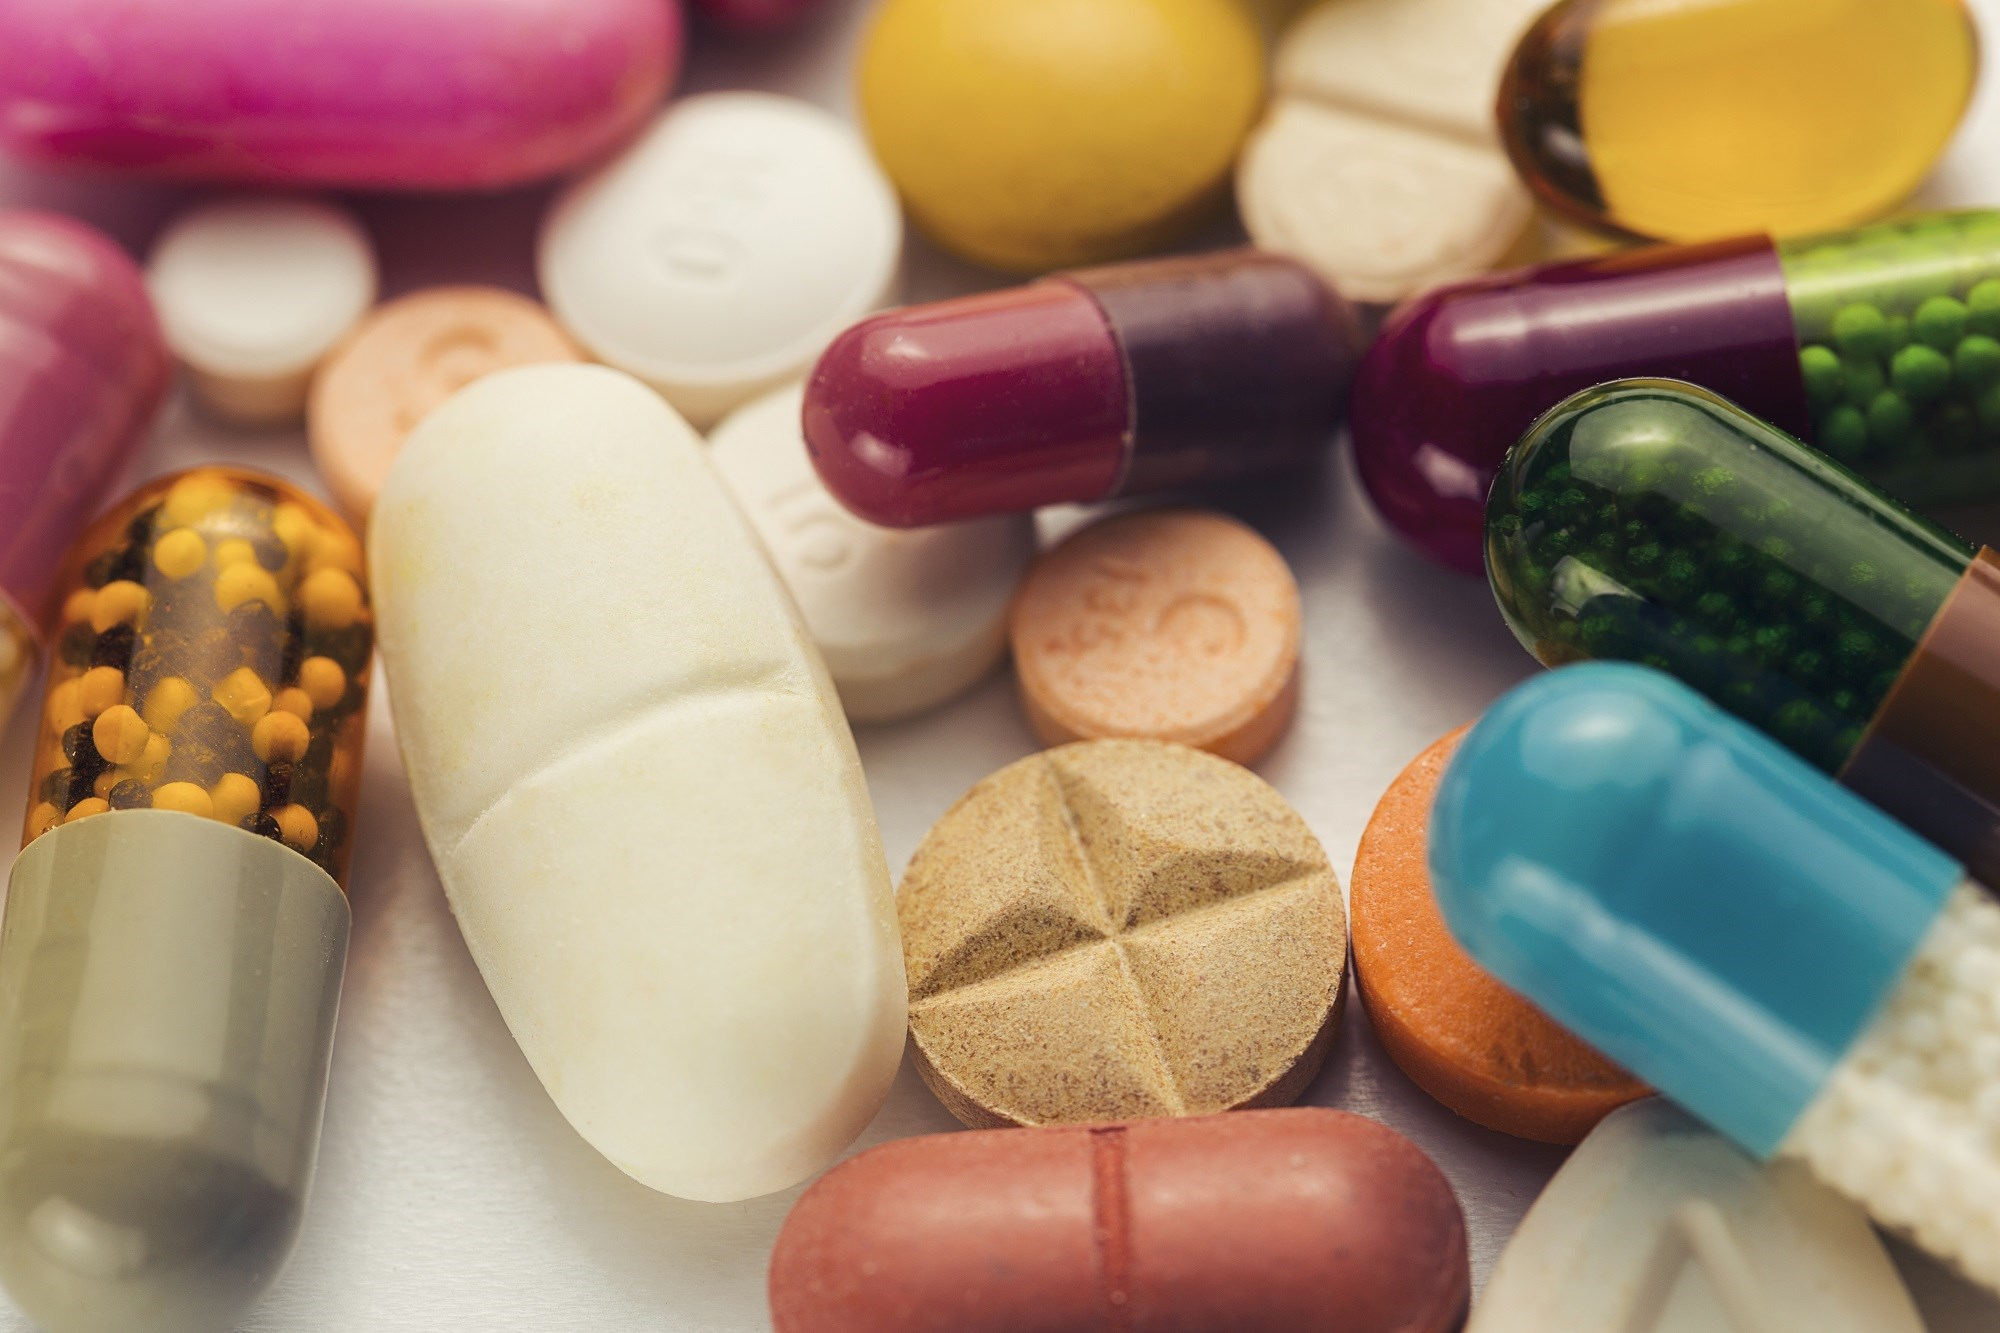 One-Third of U.S. Children, Teens Use Dietary Supplements